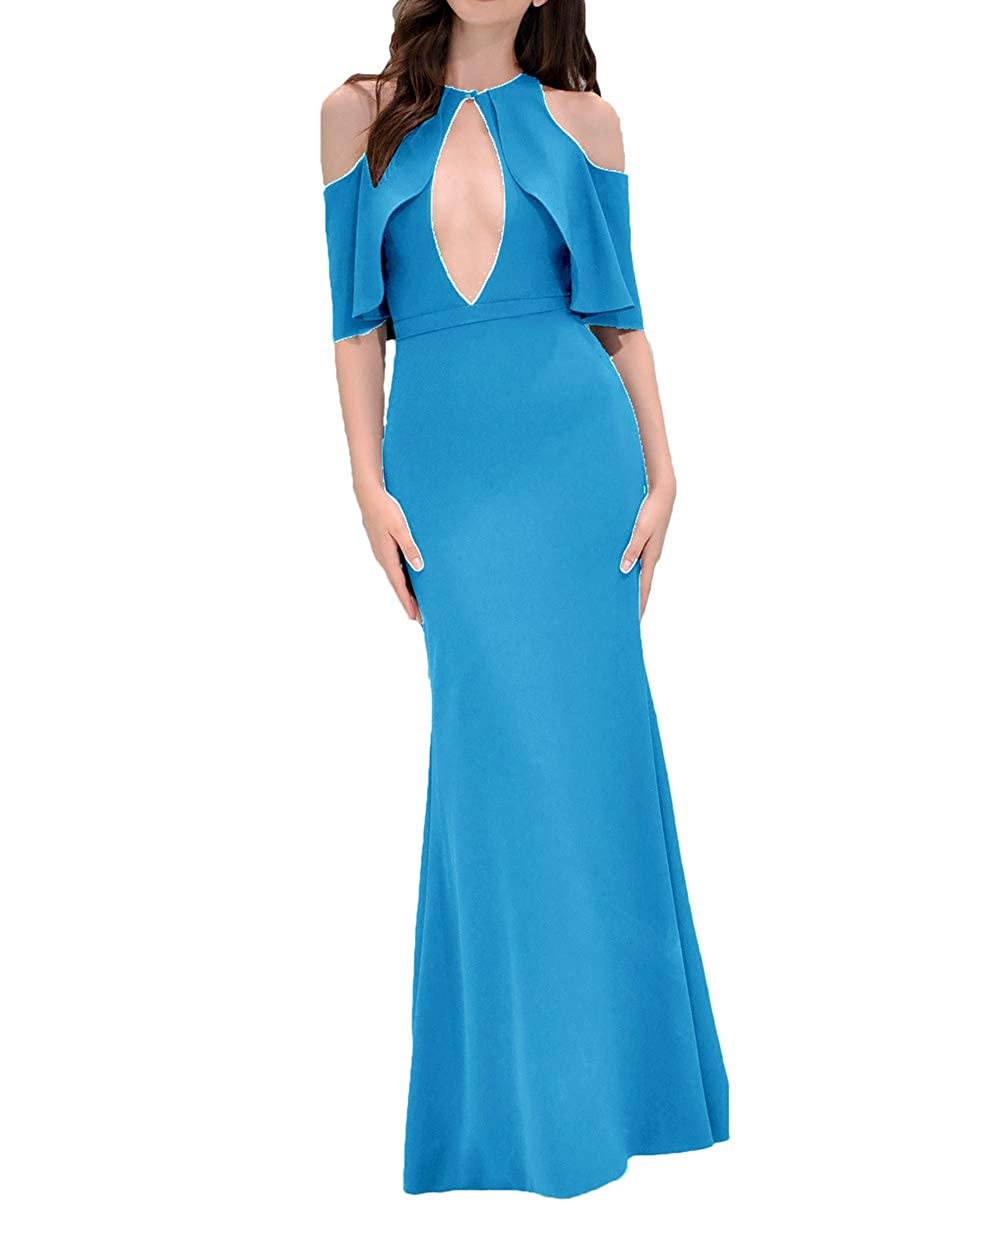 bluee alilith.Z Sexy Keyhole Neck Mermaid Prom Dresses Ruffles Half Sleeves Formal Evening Dress Party Gowns for Women 2019 Long